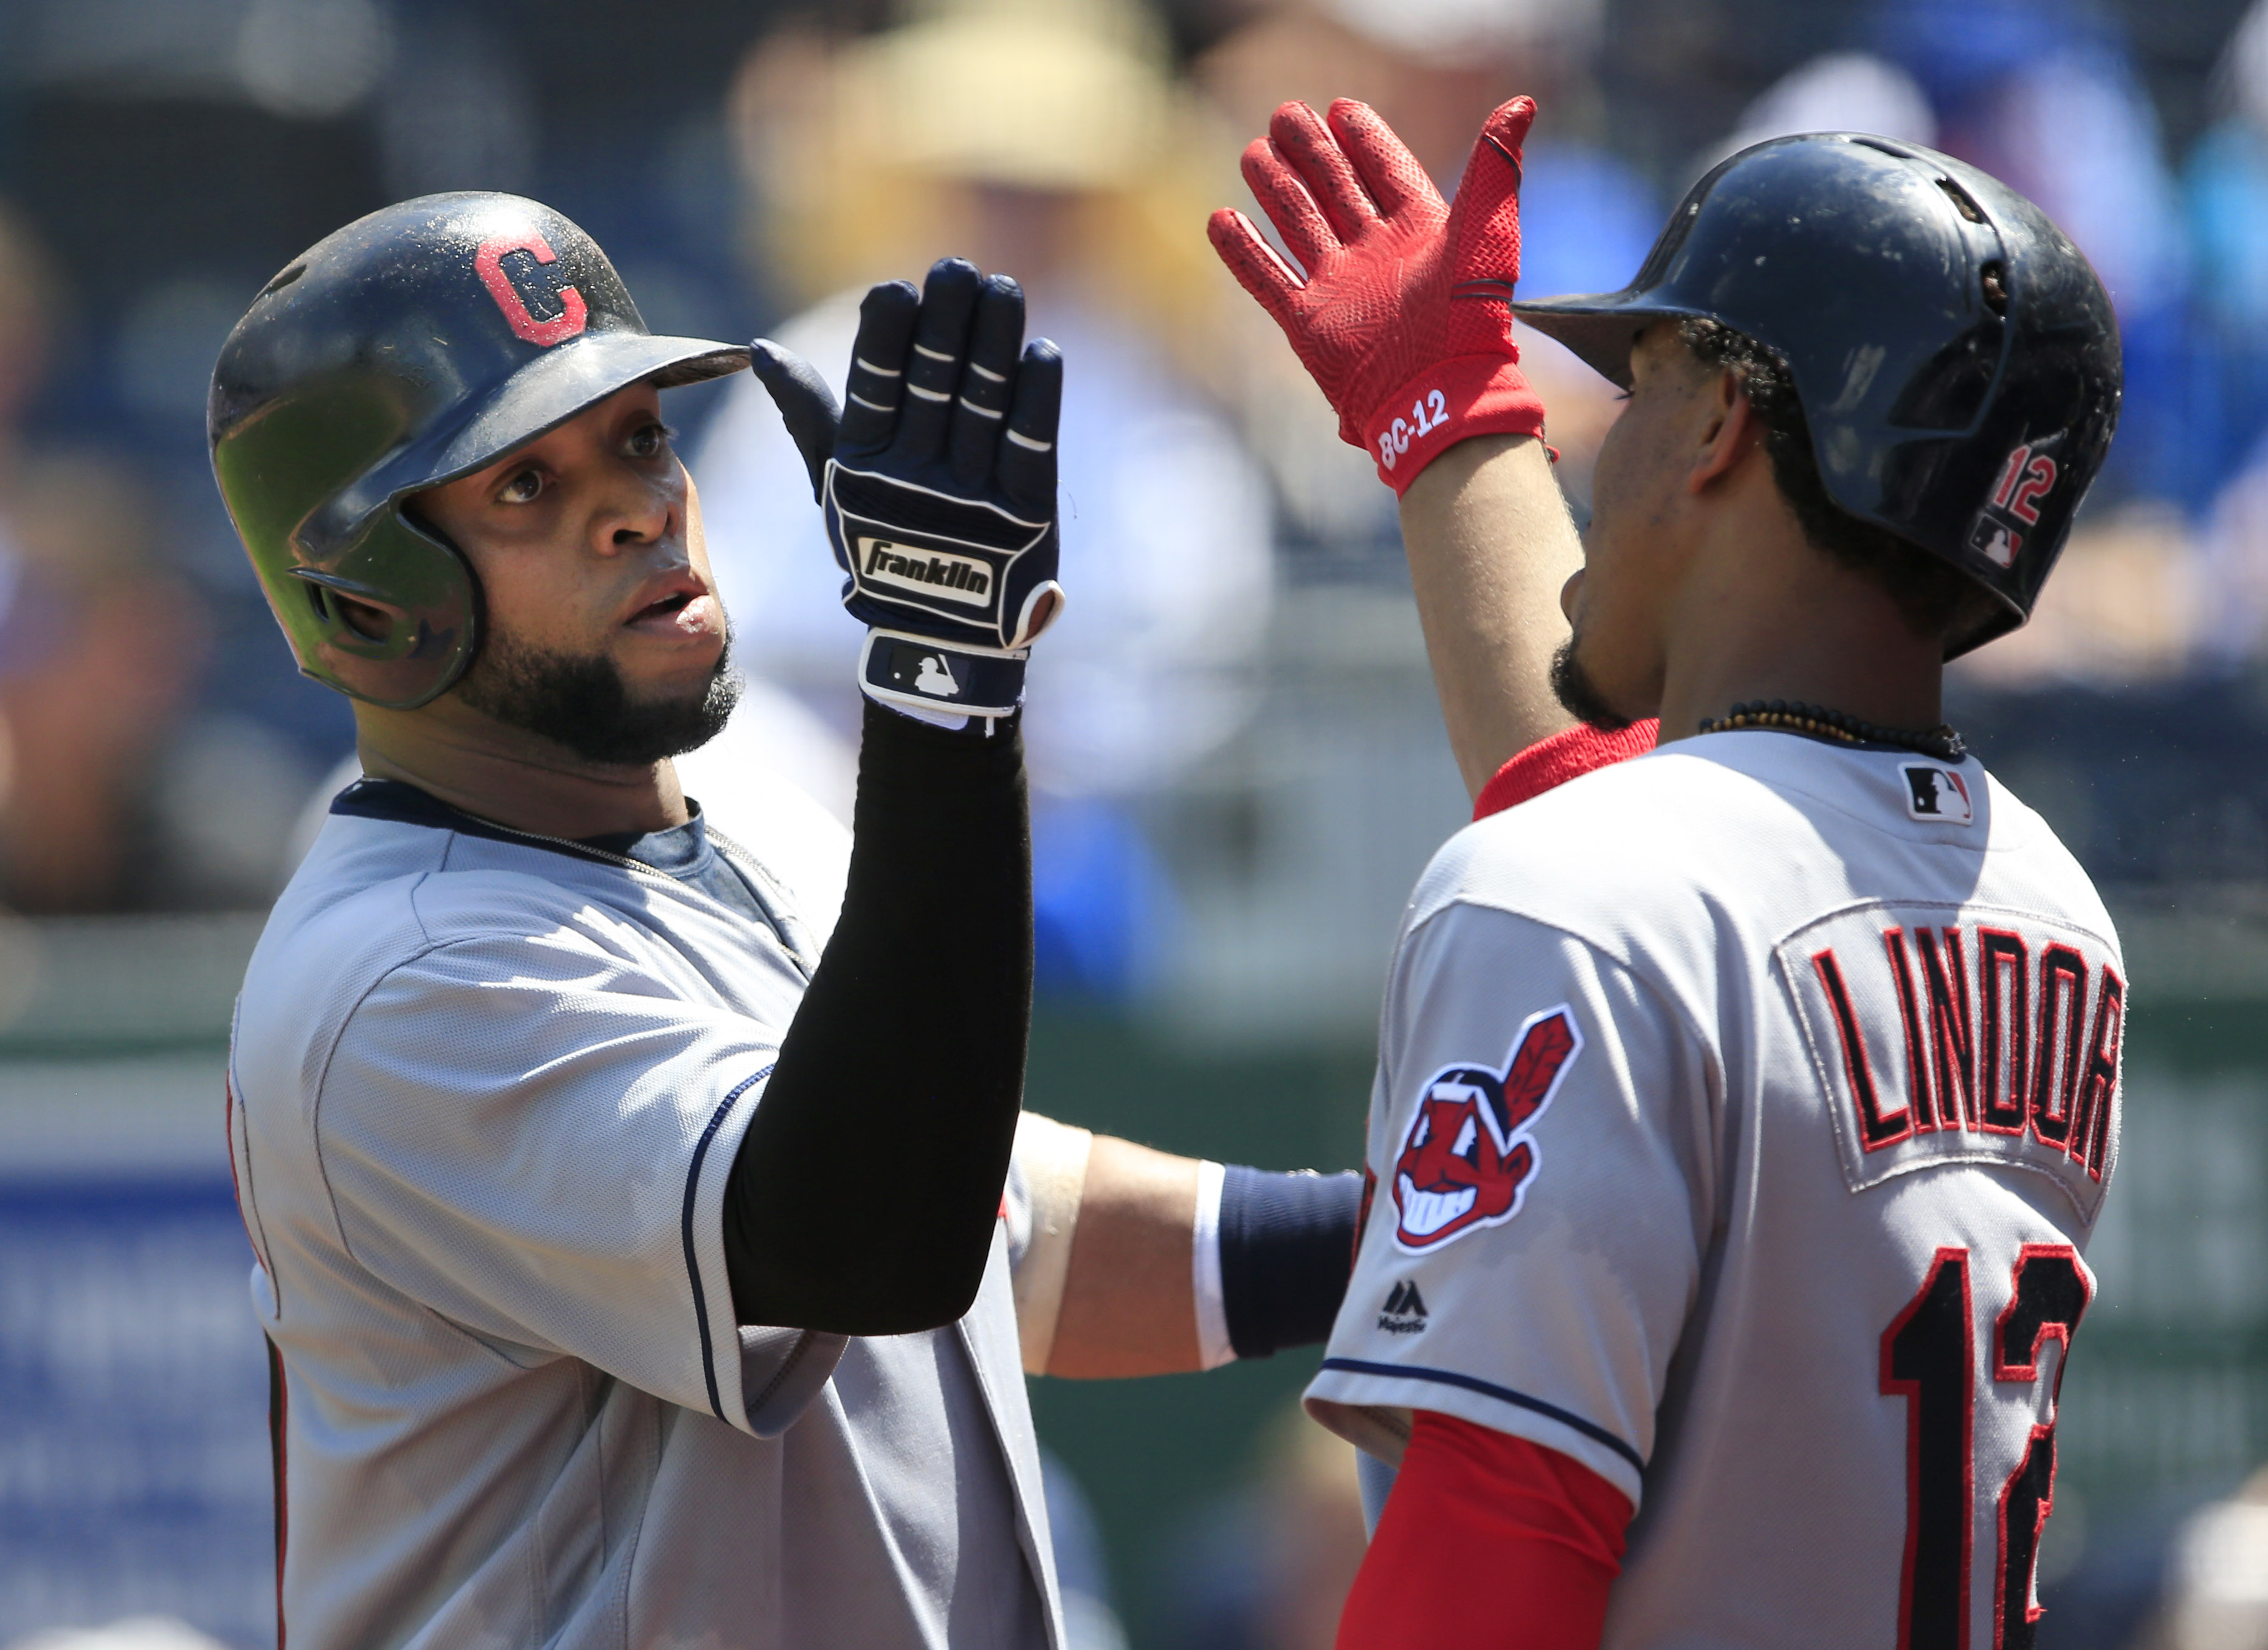 Cleveland Indians designated hitter Carlos Santana, left, celebrates his solo home run with teammate Francisco Lindor (12) during the fifth inning of a baseball game against the Kansas City Royalsnat Kauffman Stadium in Kansas City, Mo., Wednesday, July 2